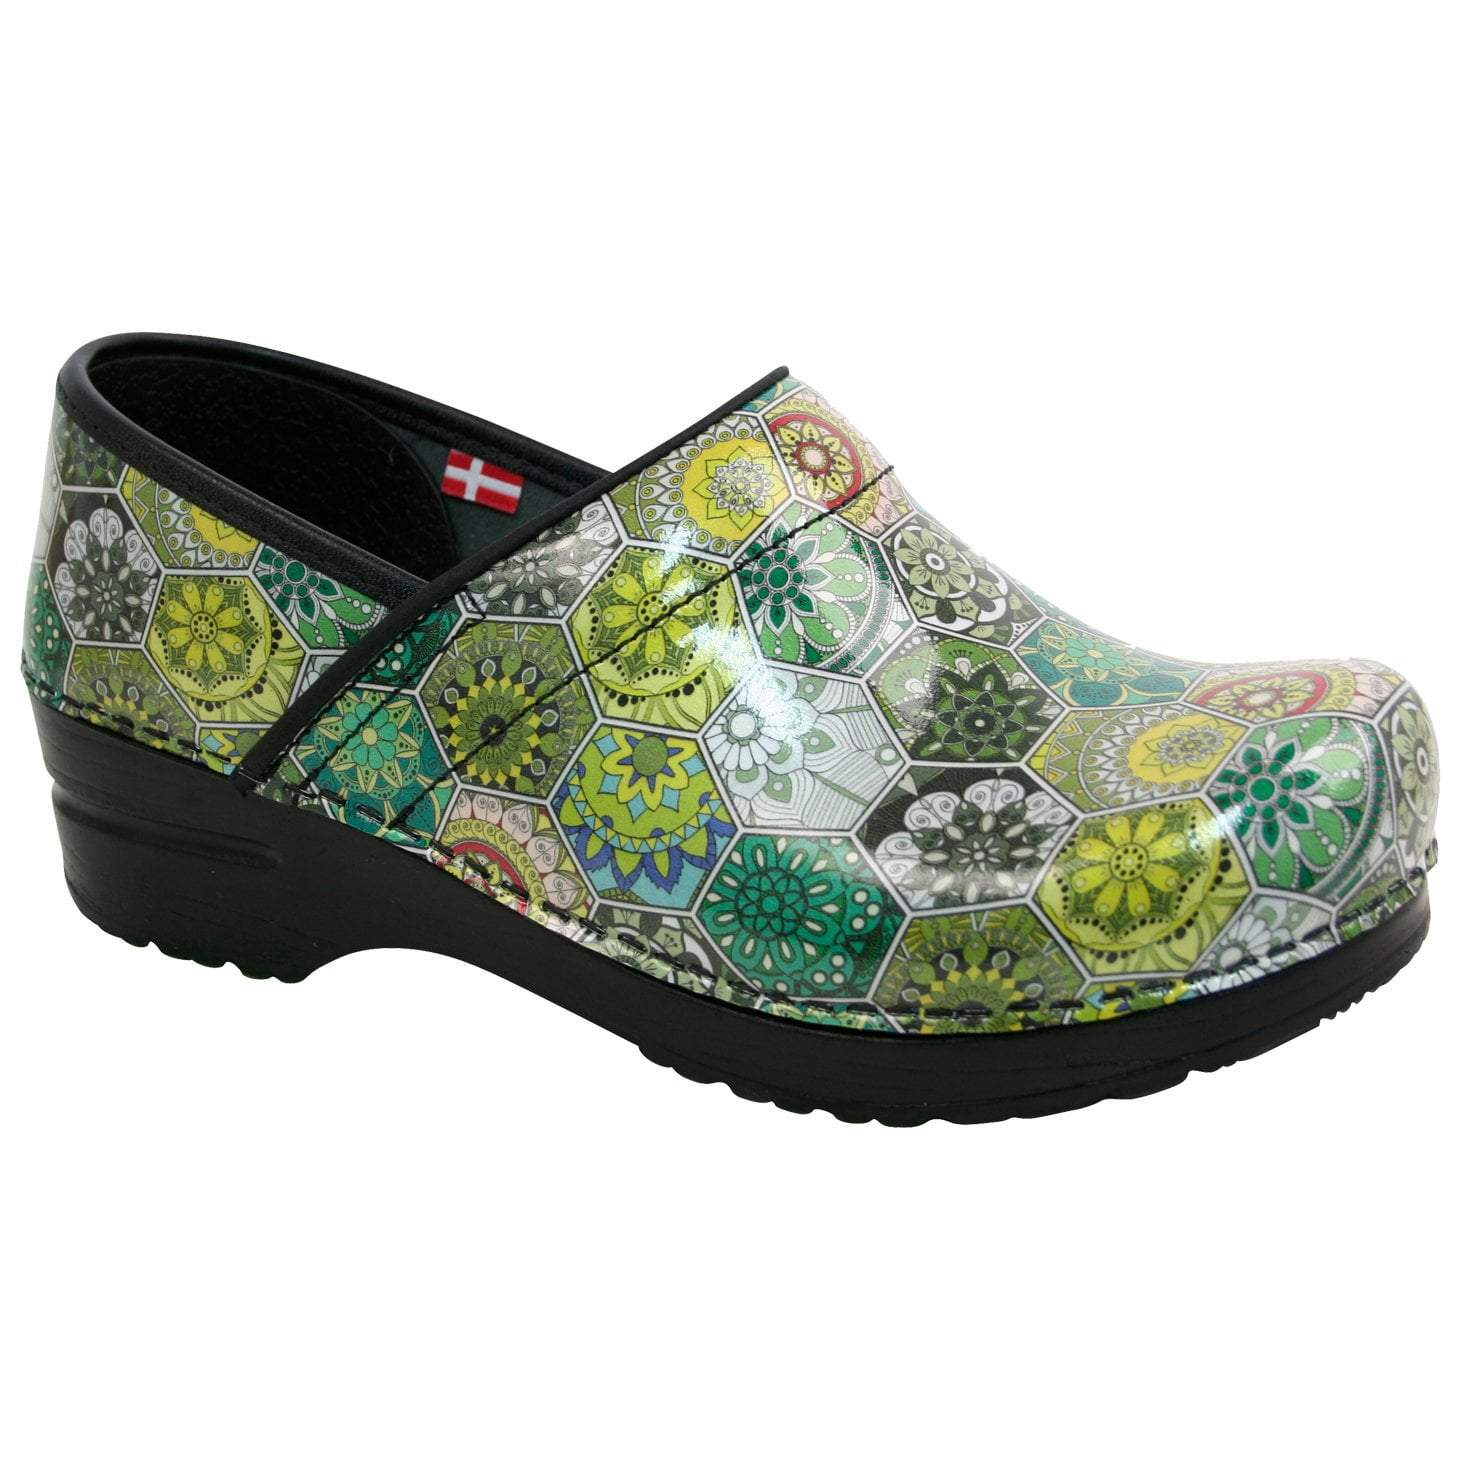 Sanita Arabesque Women's Closed Back Clog